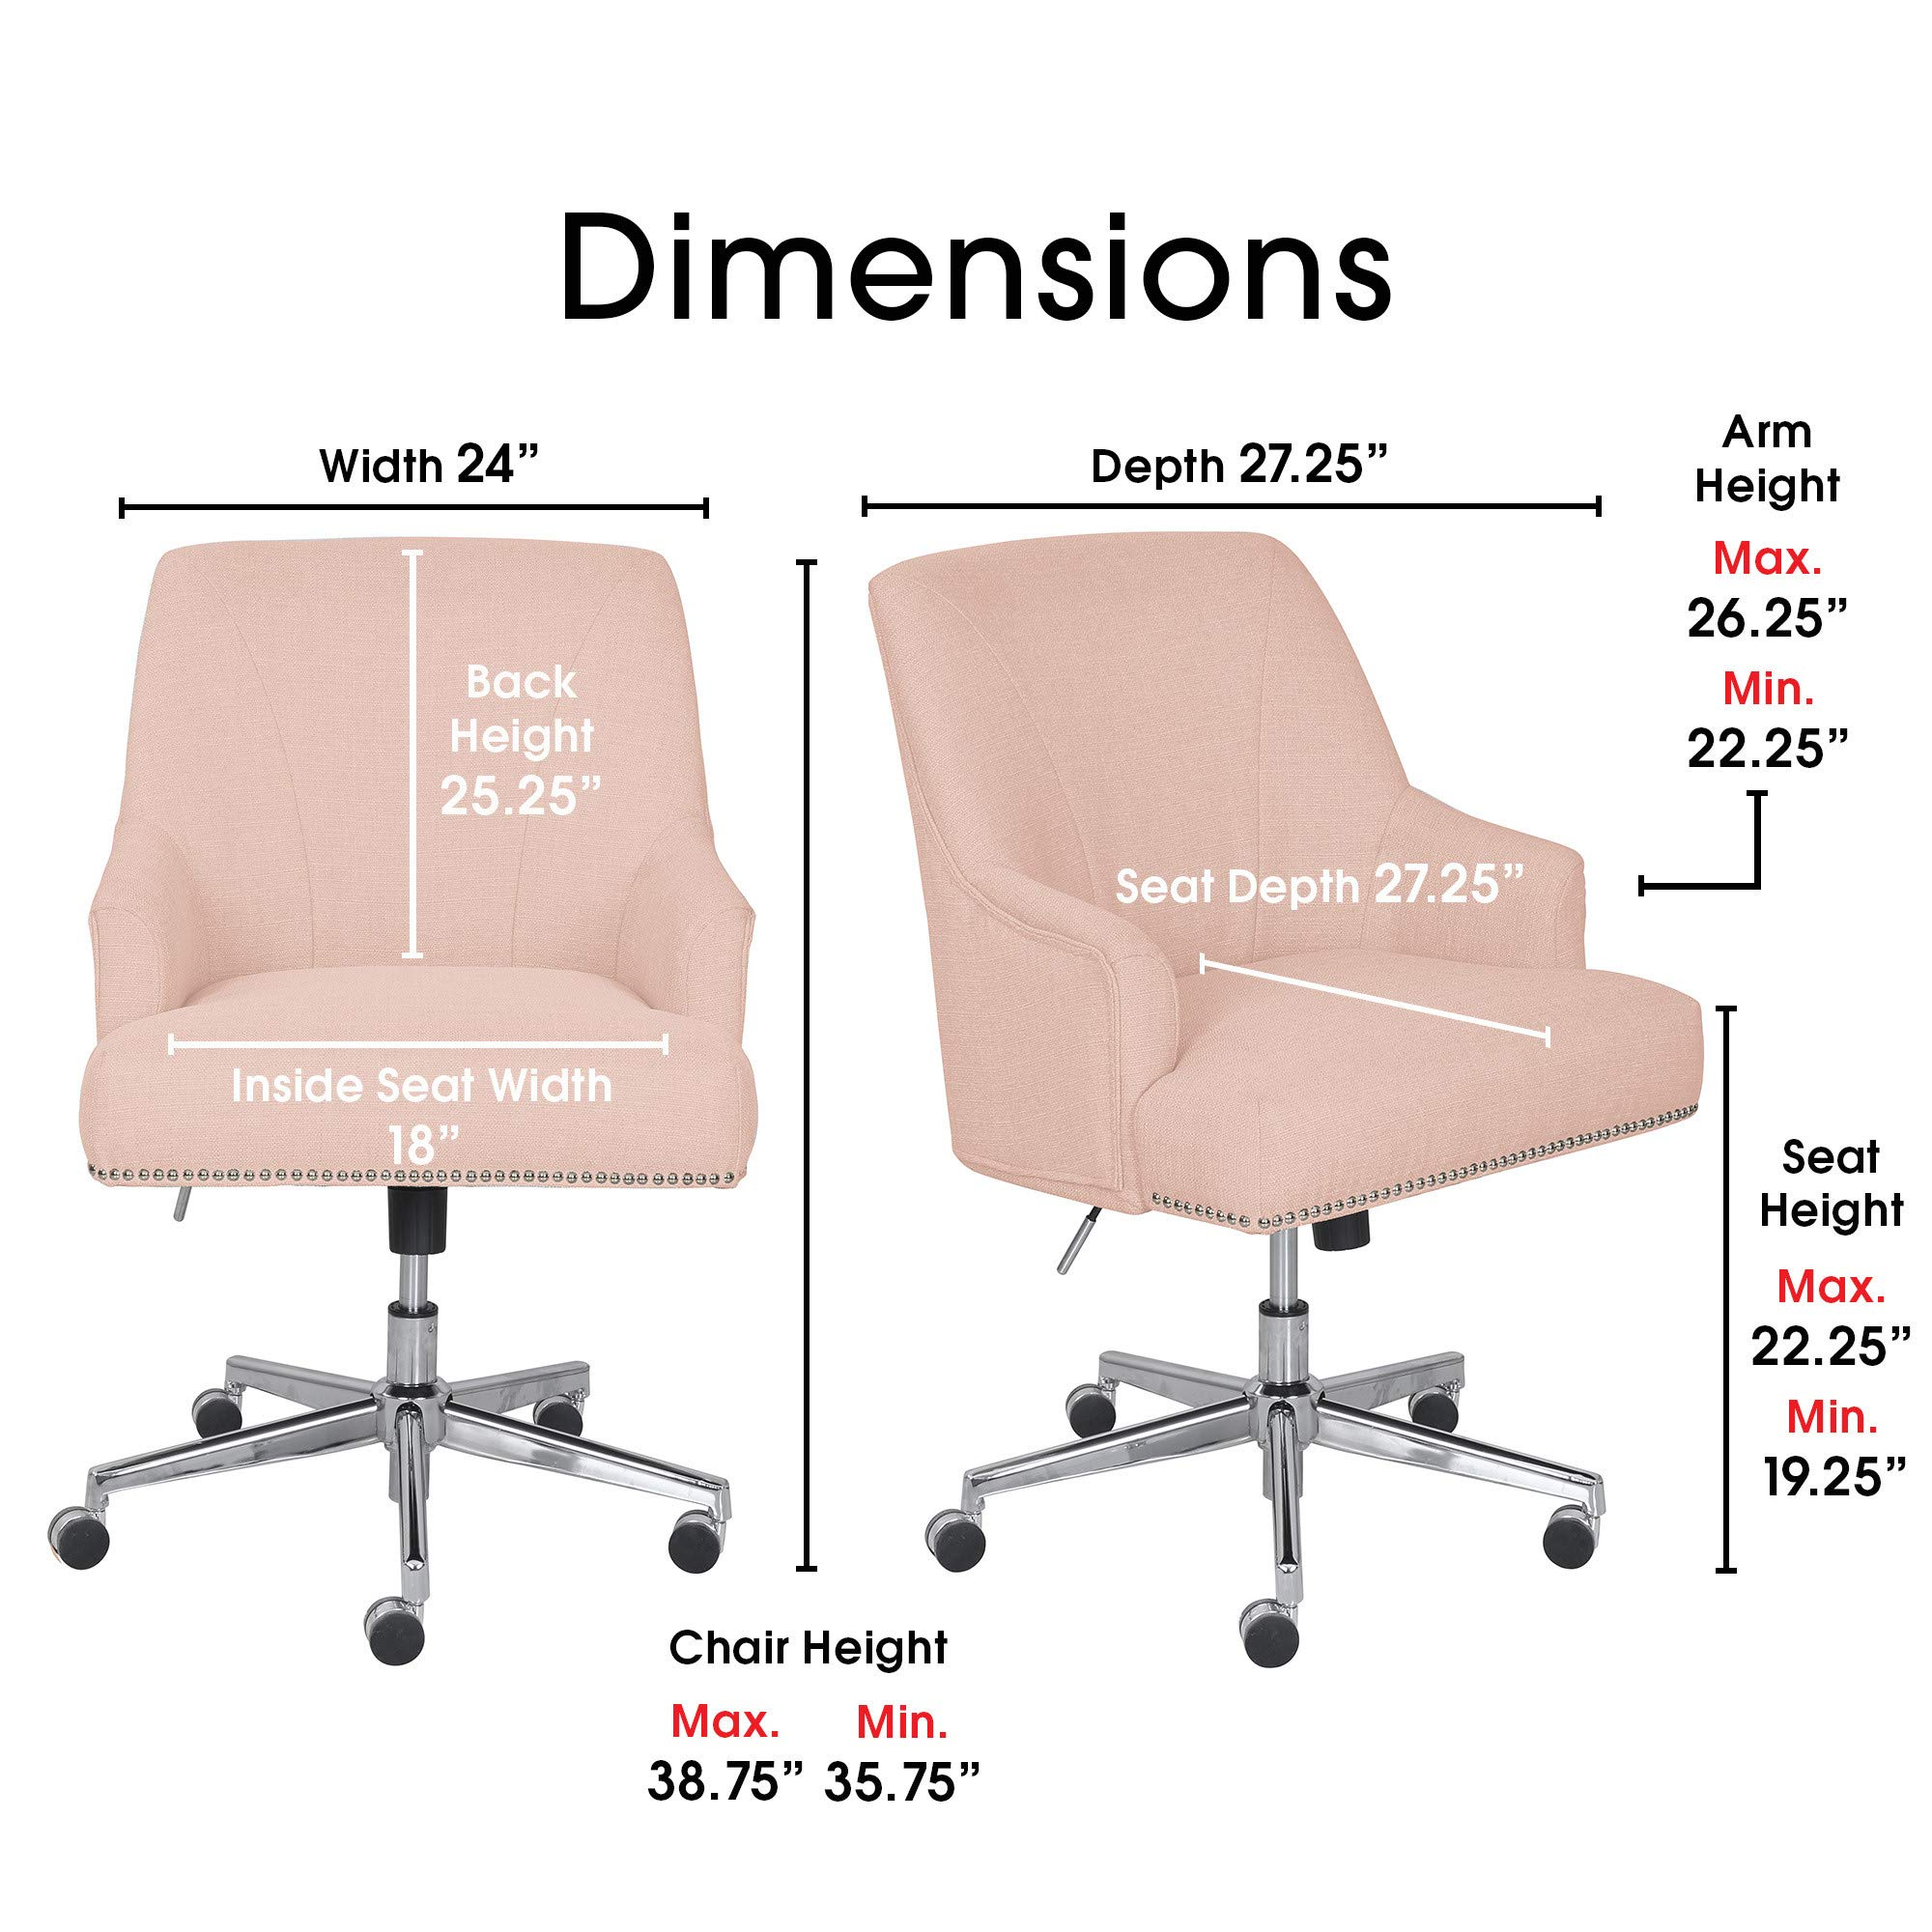 Serta Leighton Home Office Chair With Memory Foam Height Adjustable Desk Accent Chair With Chrome Finished Stainless Steel Base Twill Fabric Blush Pink Buy Online In Colombia Serta Products In Colombia See